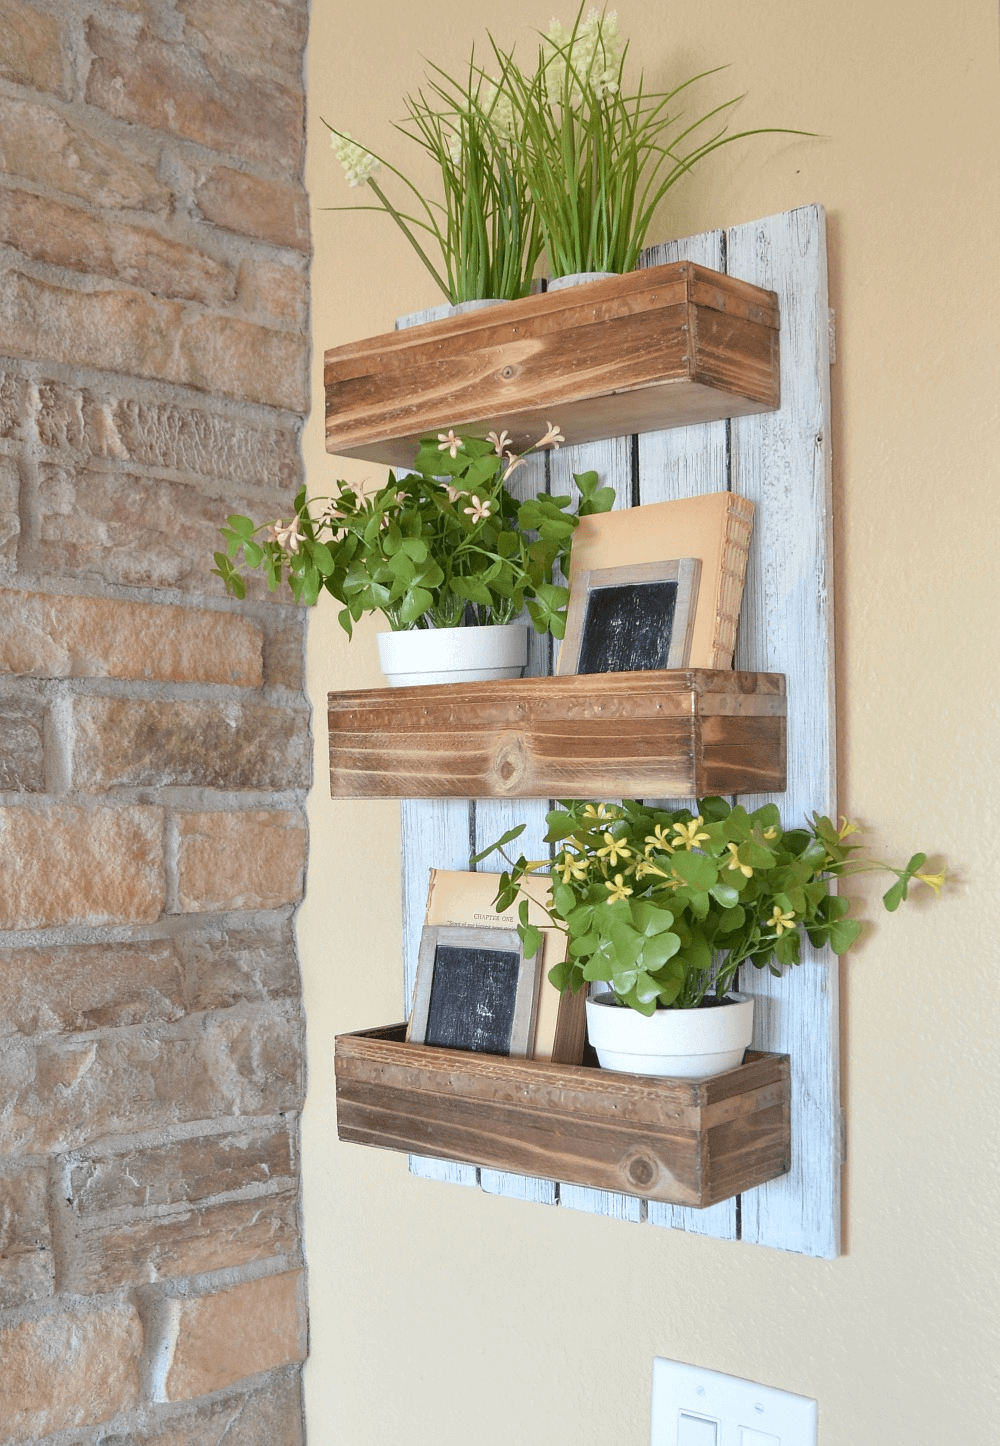 Plant box diy and flower hanger front porch decorating ideas